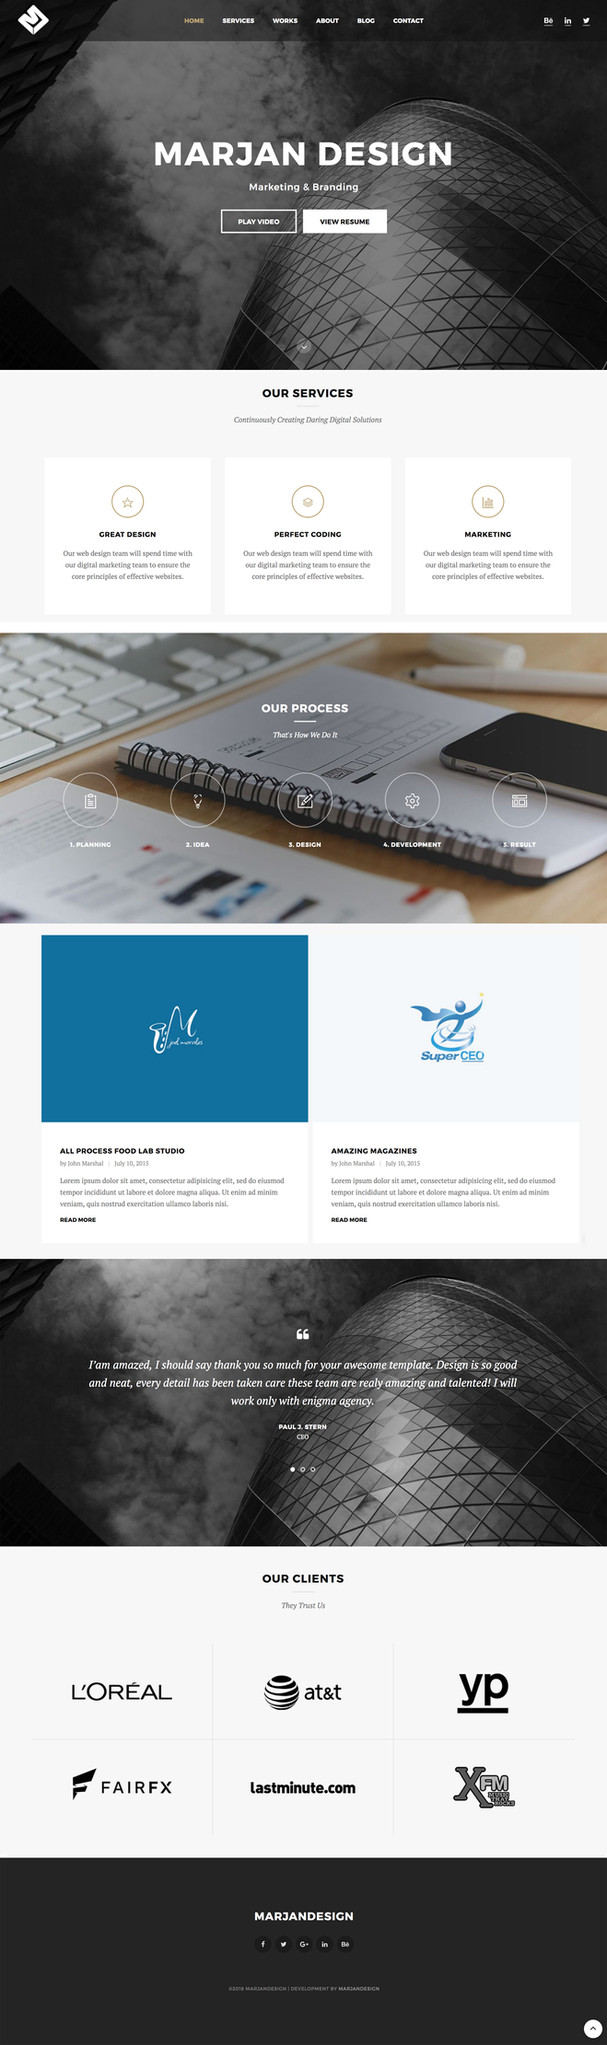 Marjan Design Website